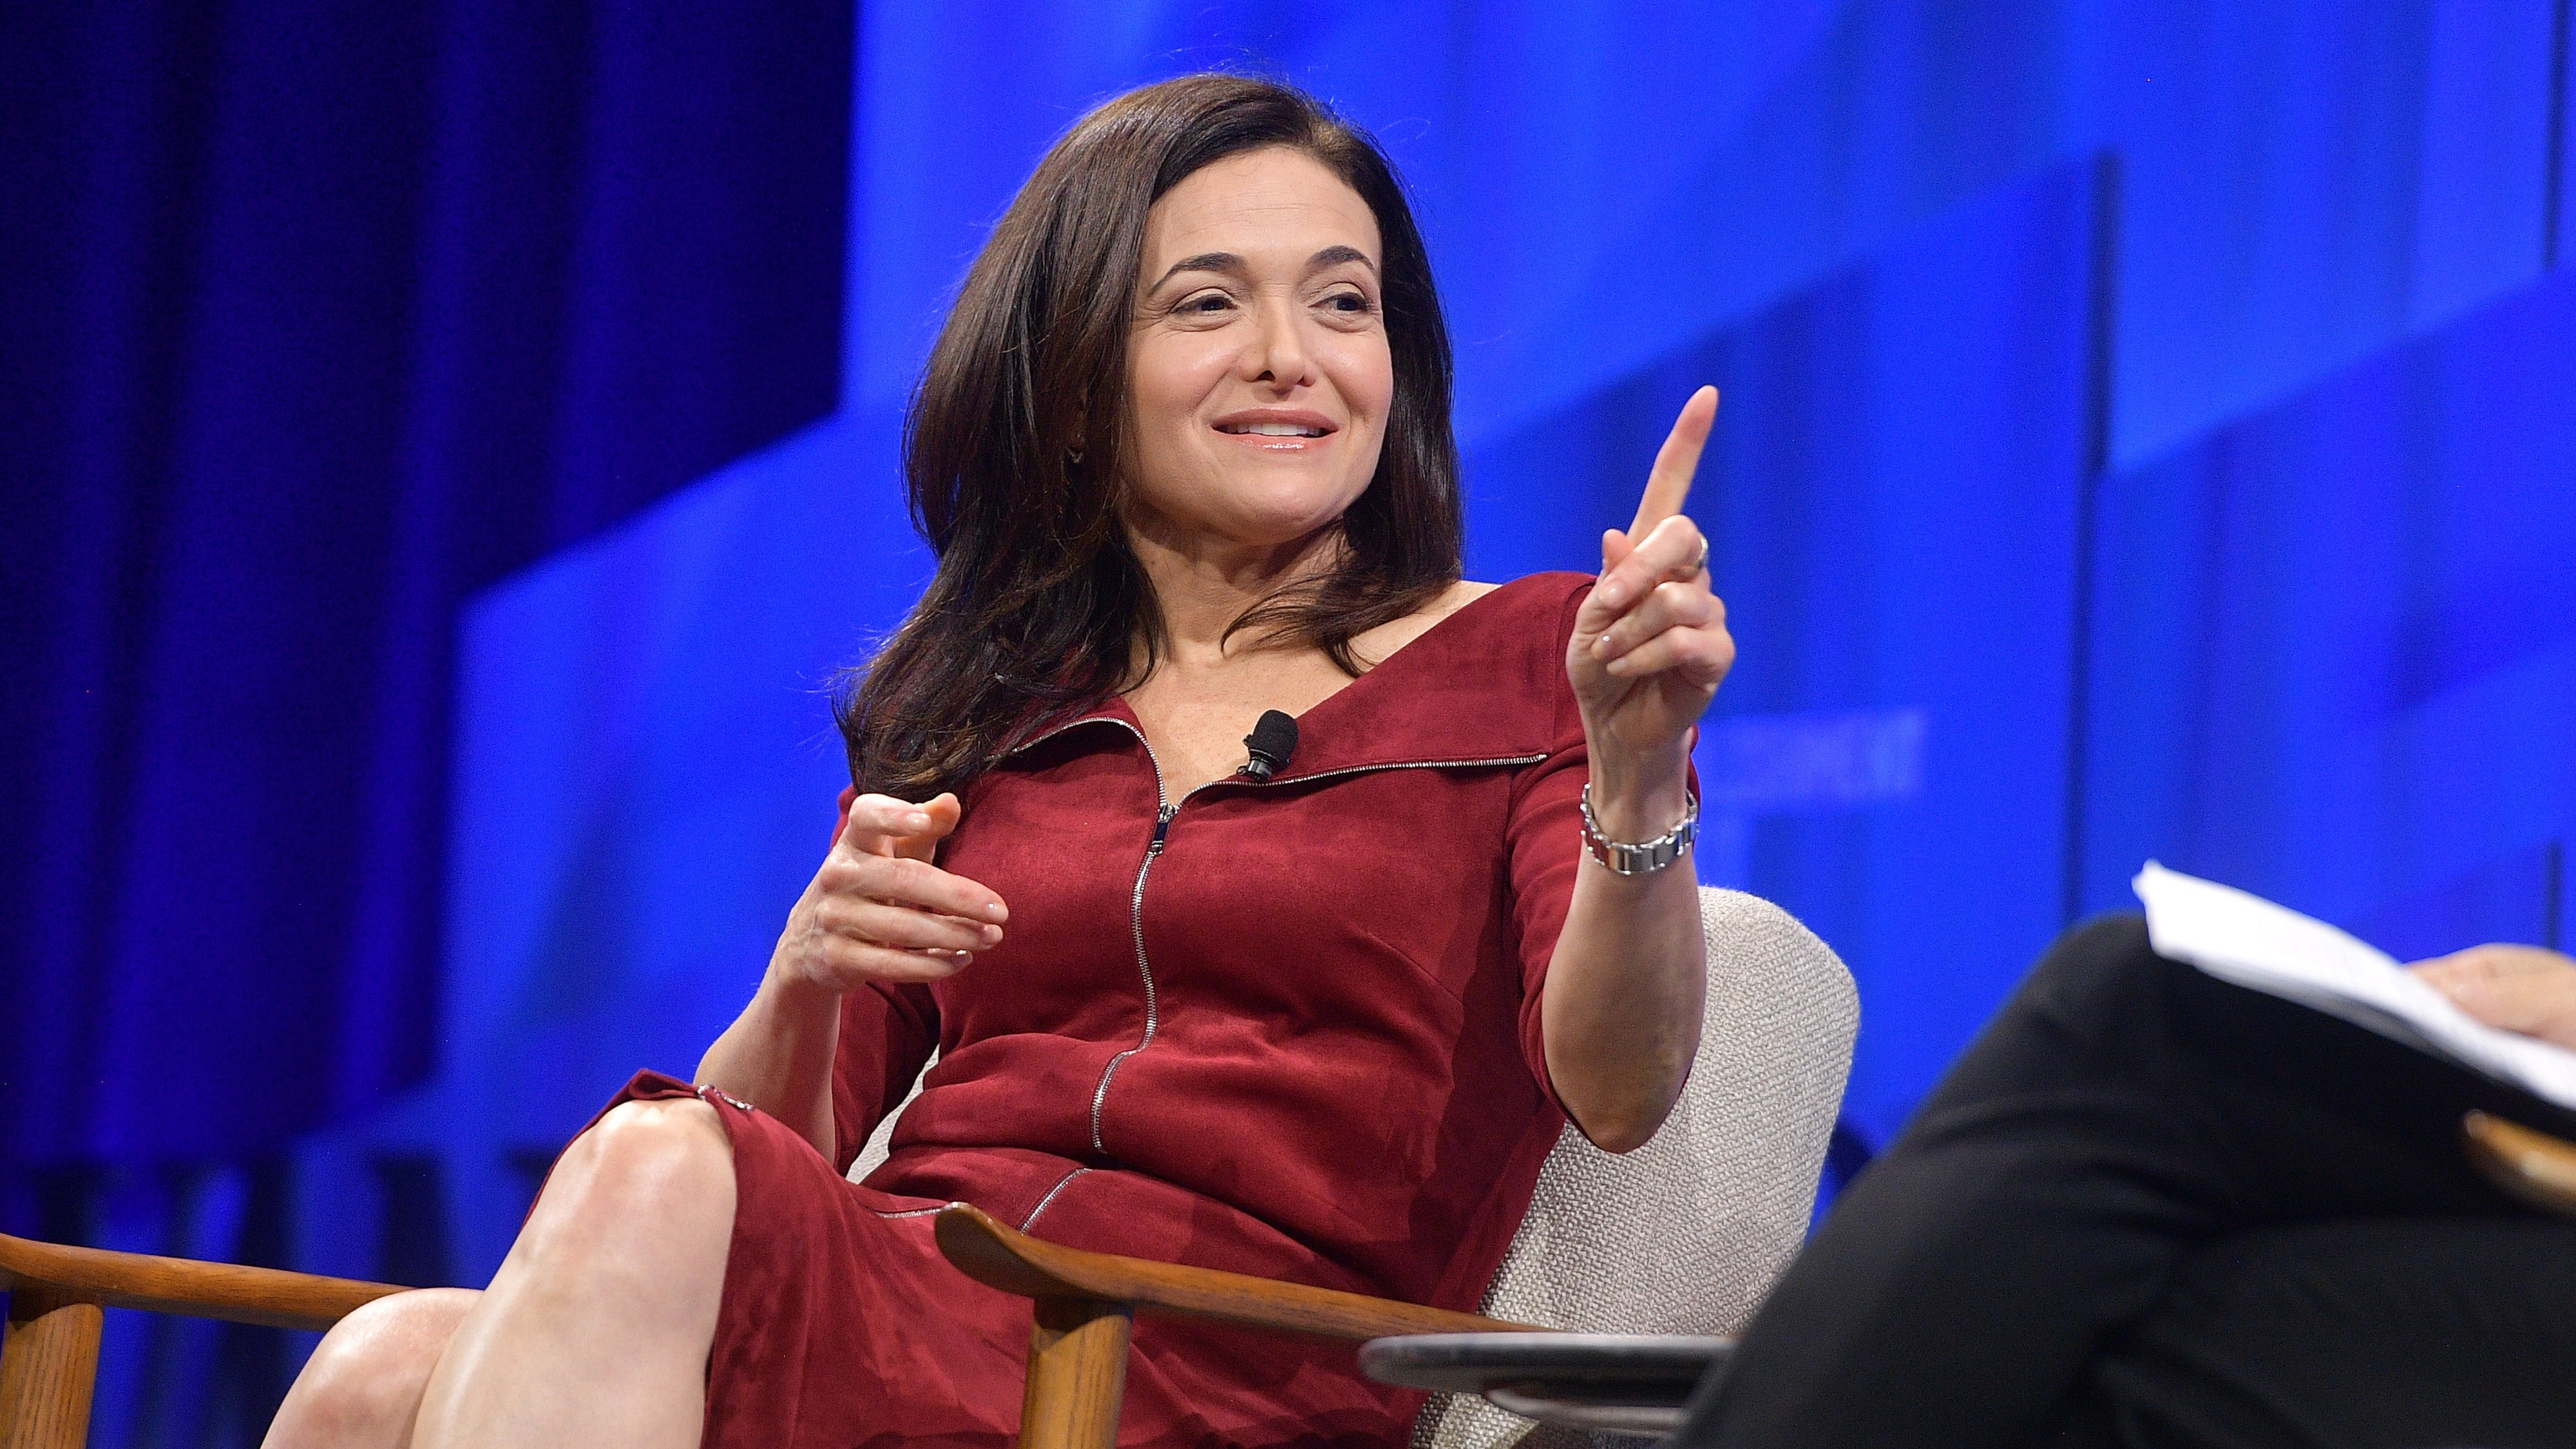 Facebook COO: We Let Politicians Lie In Facebook Ads For The 'Discourse,' Not The Money